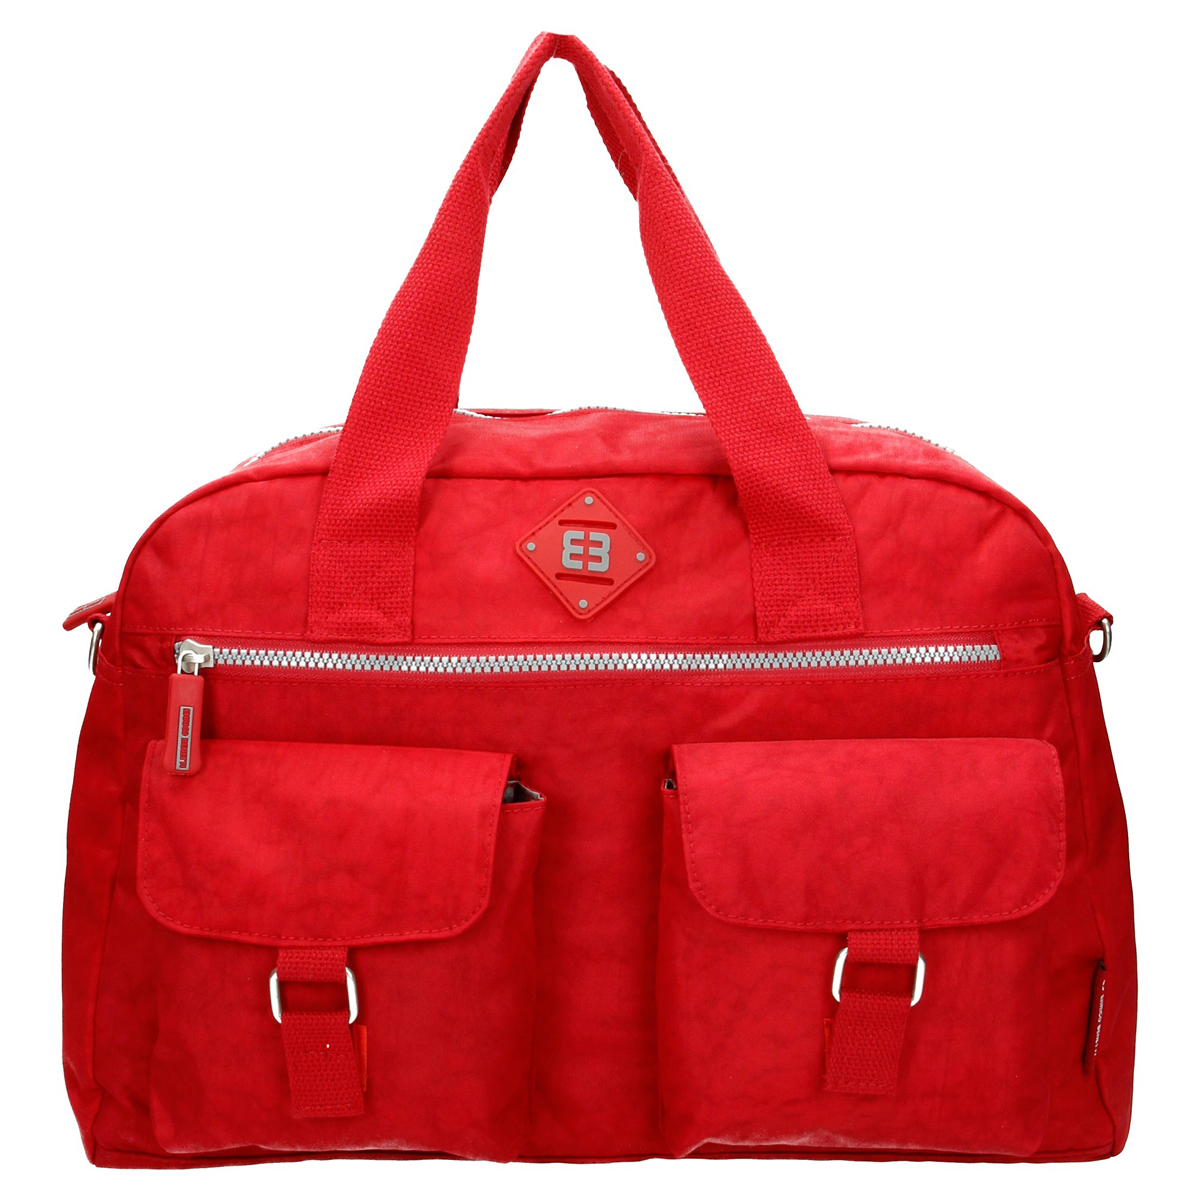 Sac cabas multipoches \'Enrico Benetti\' rouge - 40x27x15 cm - [Q1783]